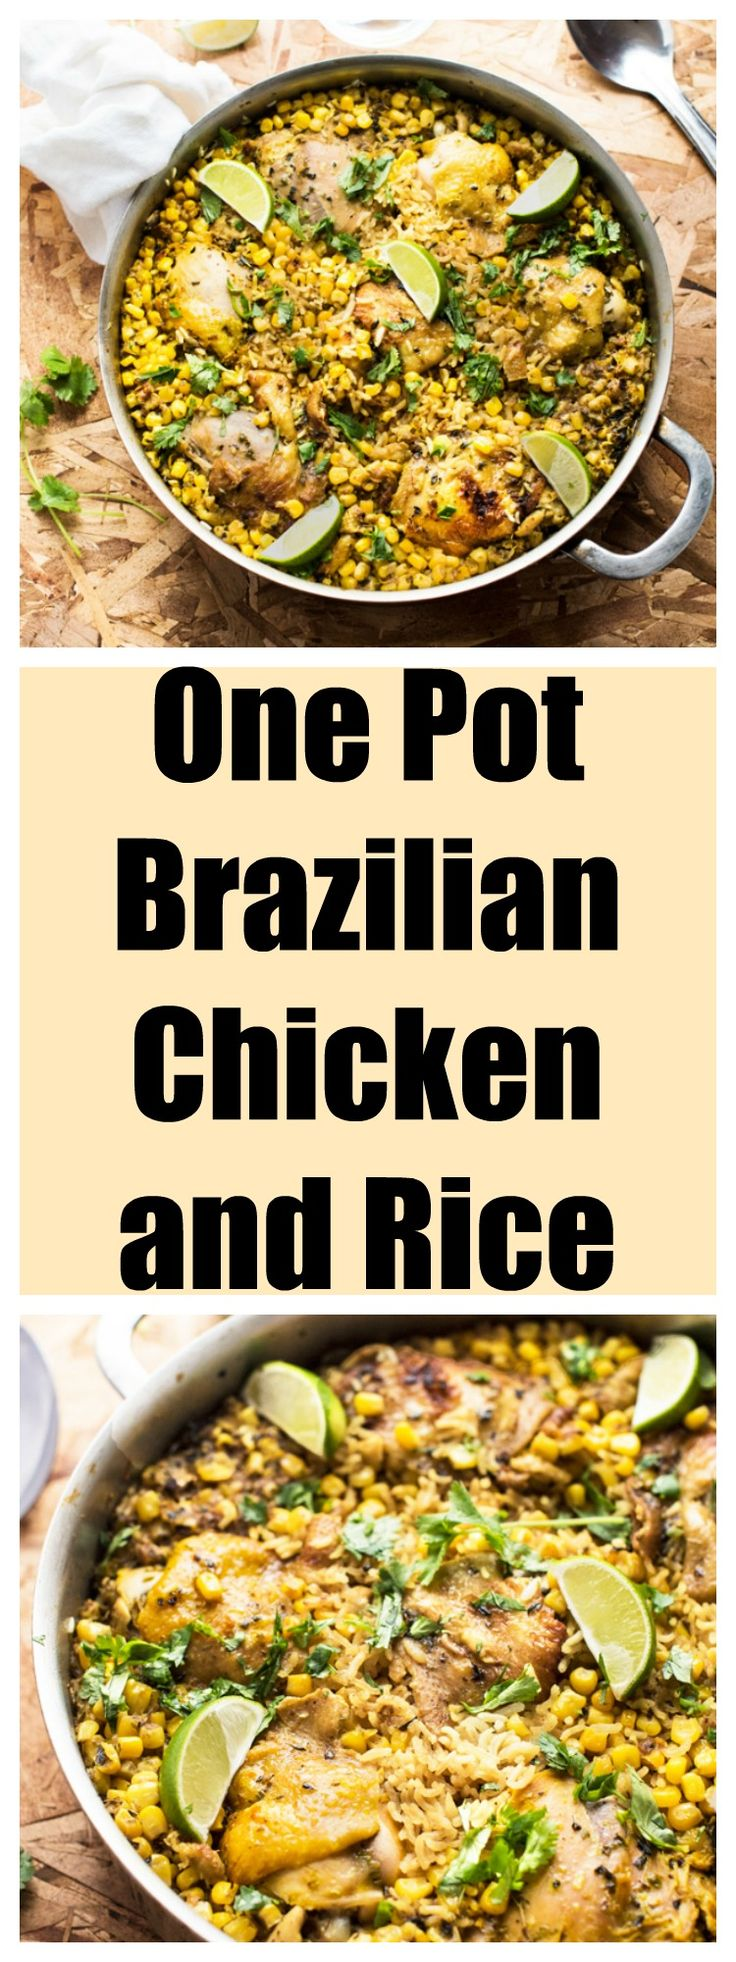 ONE POT BRAZILIAN CHICKEN AND RICE.  chicken thighs, 4tbsp oregano, 3tbsp oil, 1 garlic,  2 cups corn, 2½ cups rice, 2-3 cups chicken stock, 1tbsp turmeric, 1 lemon, parsley.